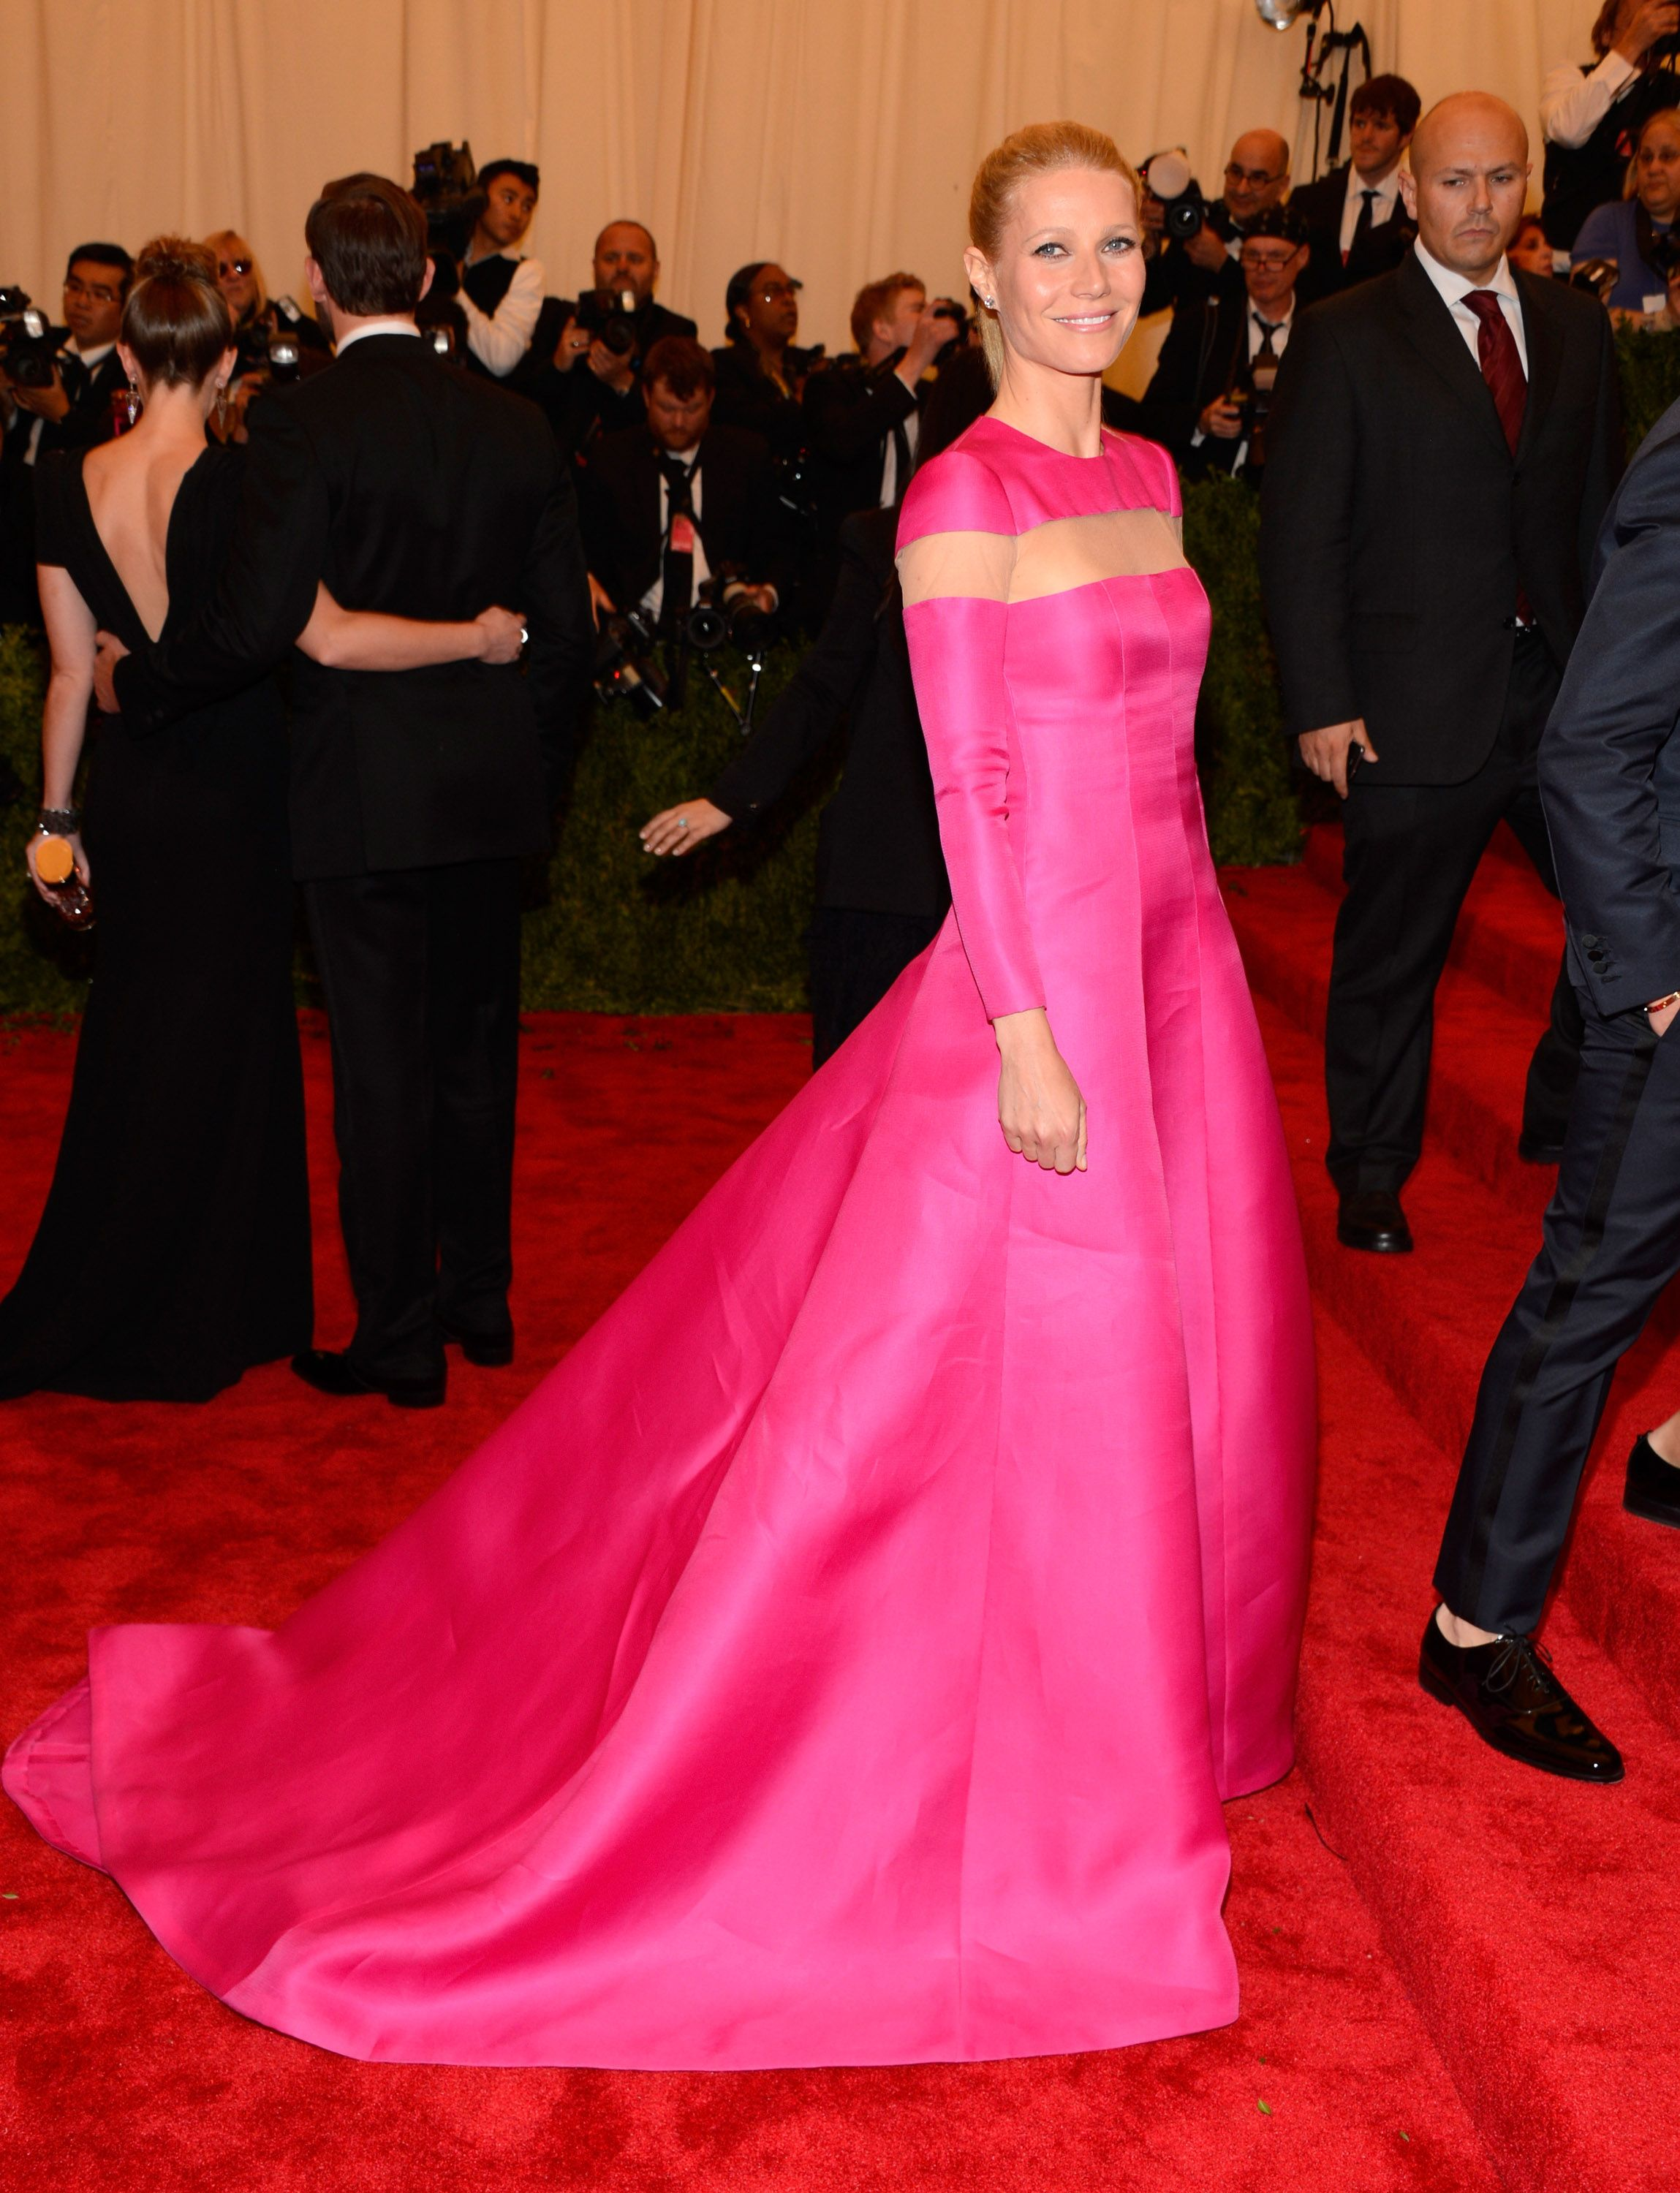 Gwyneth Paltrow Adds a Shock of Pink to the Met Gala Red Carpet ...